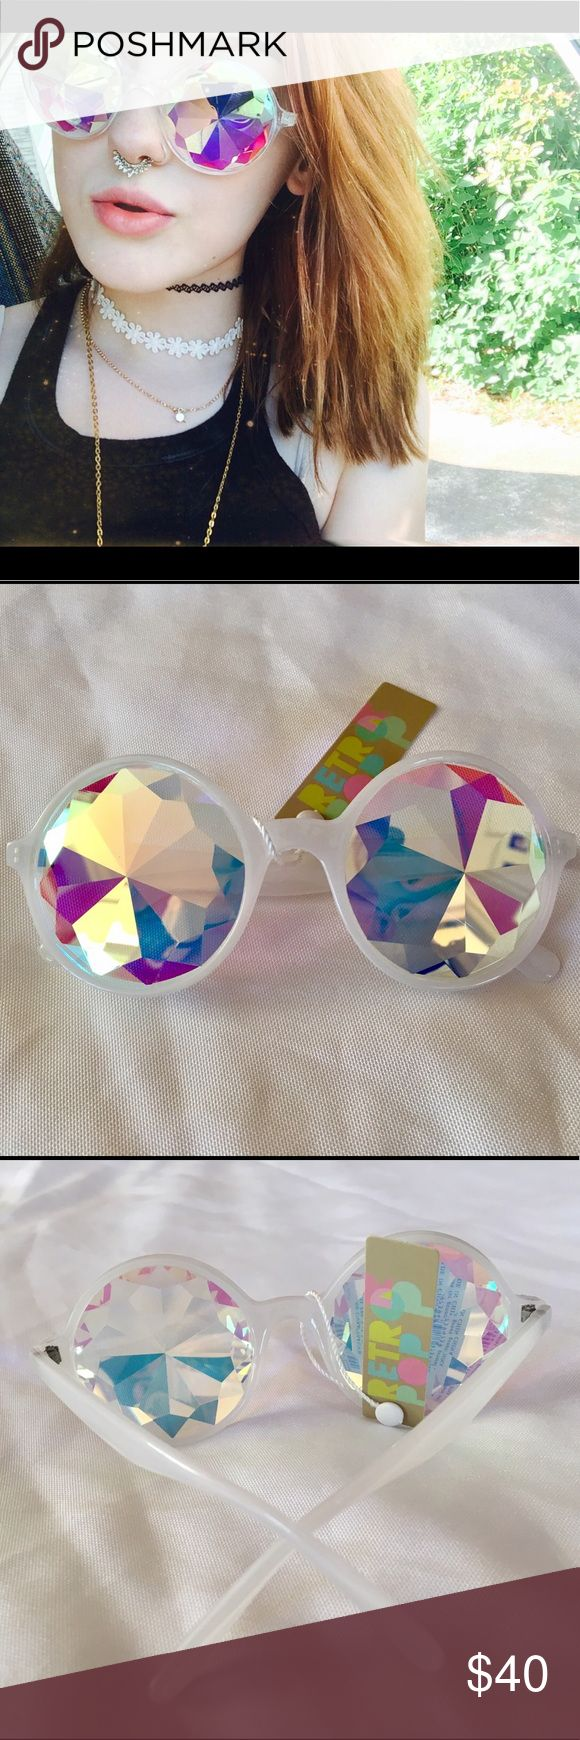 Kaleidoscope Festival Sunglasses White Rainbow These is a pair of super trippy hippie kaleidoscope sunglasses, perfect for raves, music festivals, or just for some cool pics! 100% UVA/UVB protection. Do not wear while driving or operating machinery. Accessories Sunglasses